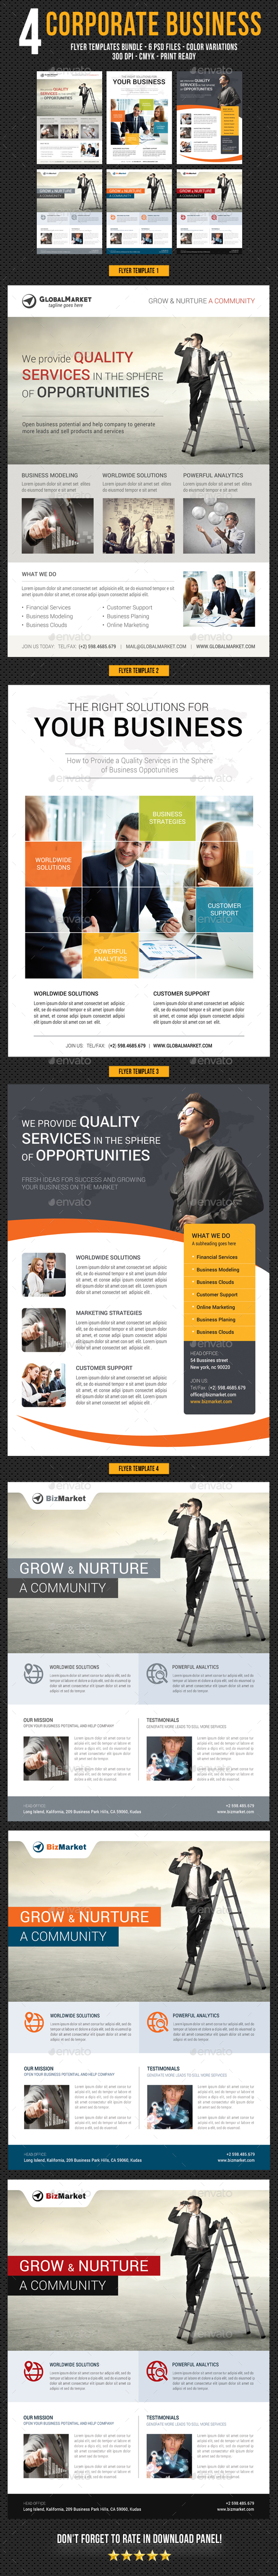 4 Corporate Business Flyer Templates Bundle V3 - Corporate Flyers